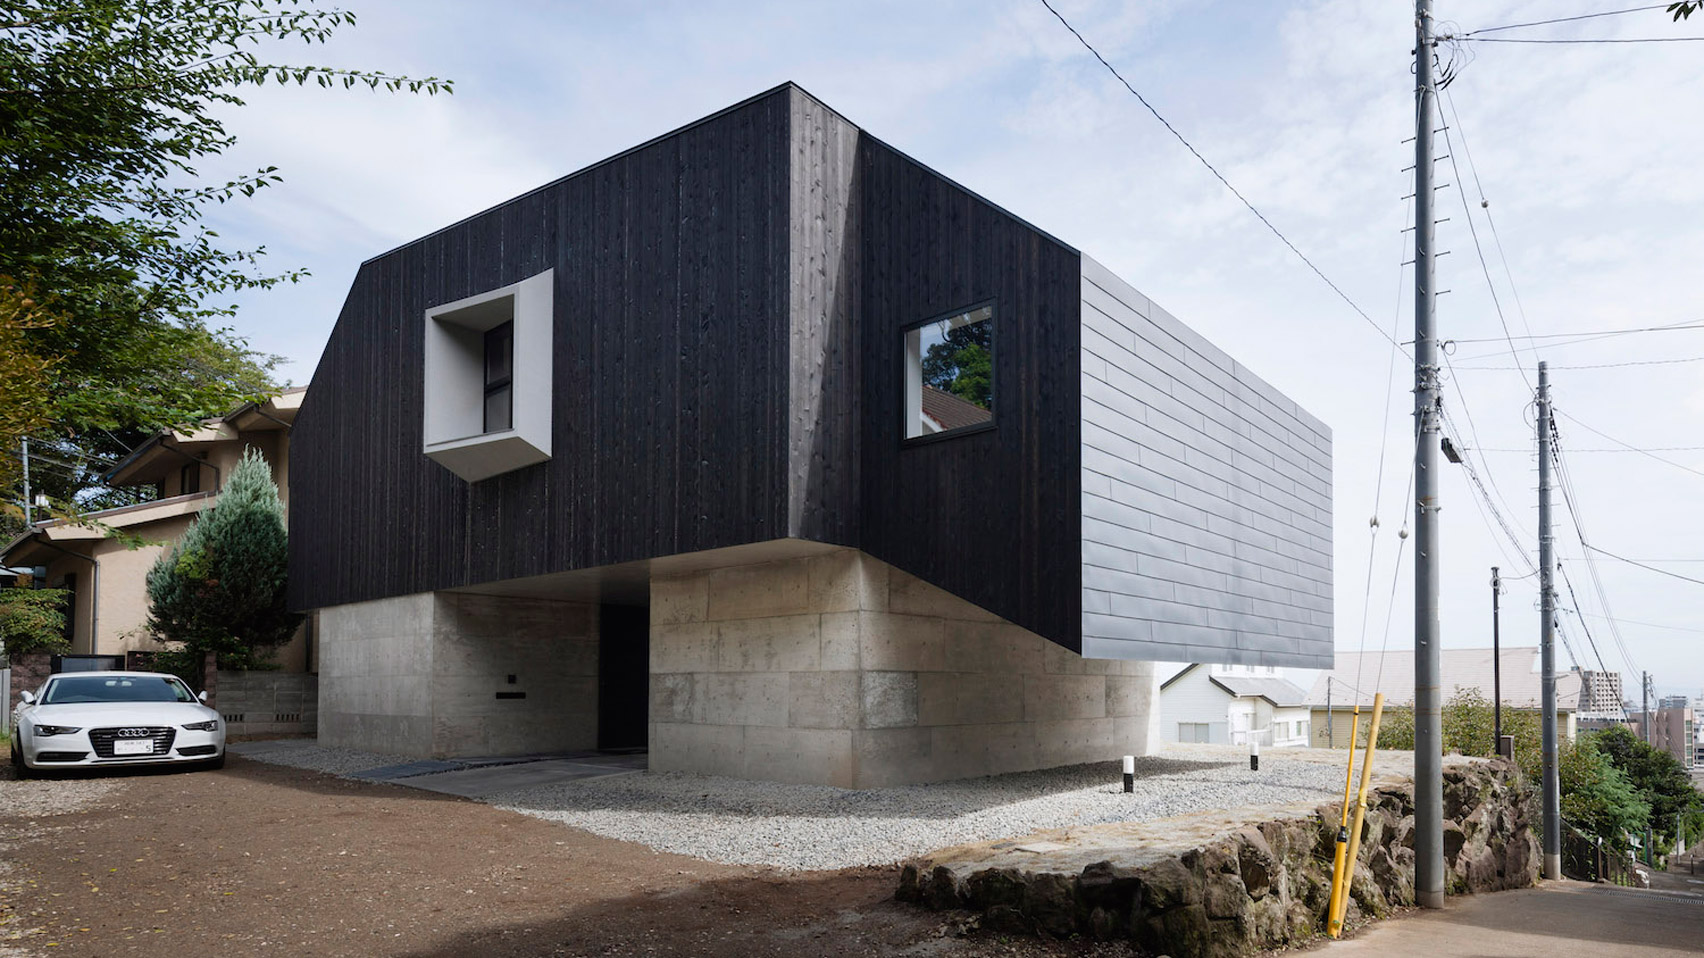 Cubo Design Architect Pairs Blackened Wood With Concrete For House In Coastal Japanese City